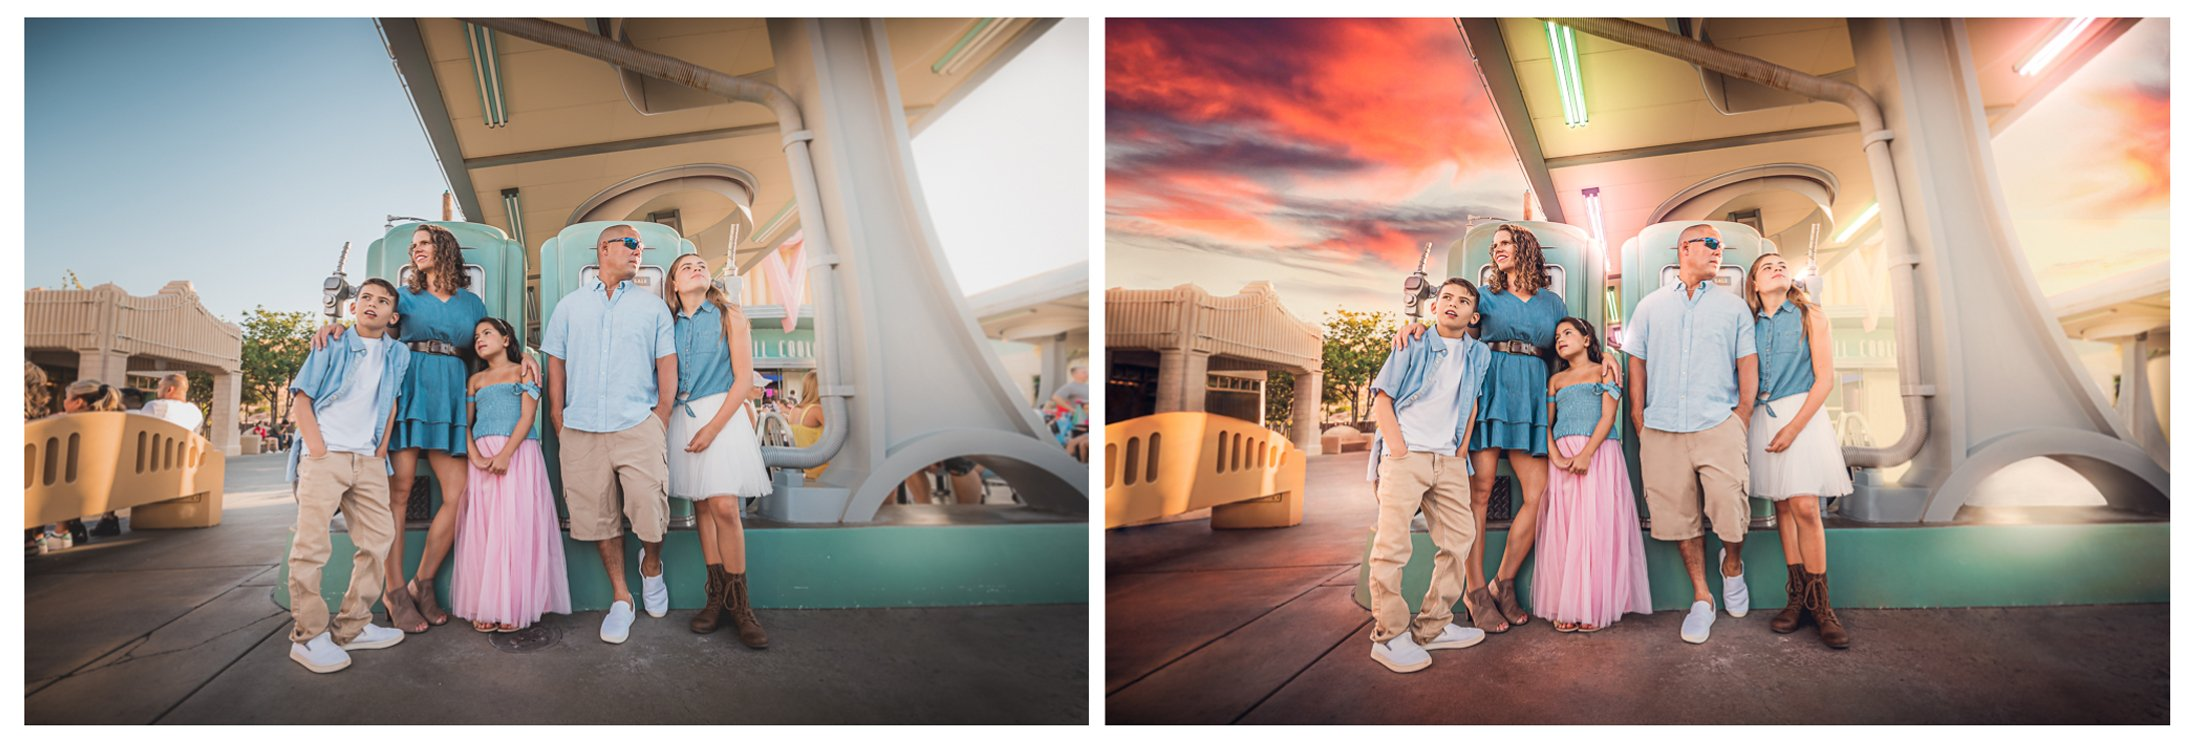 Masterpiece Finish Service - Disneyland Family Photo